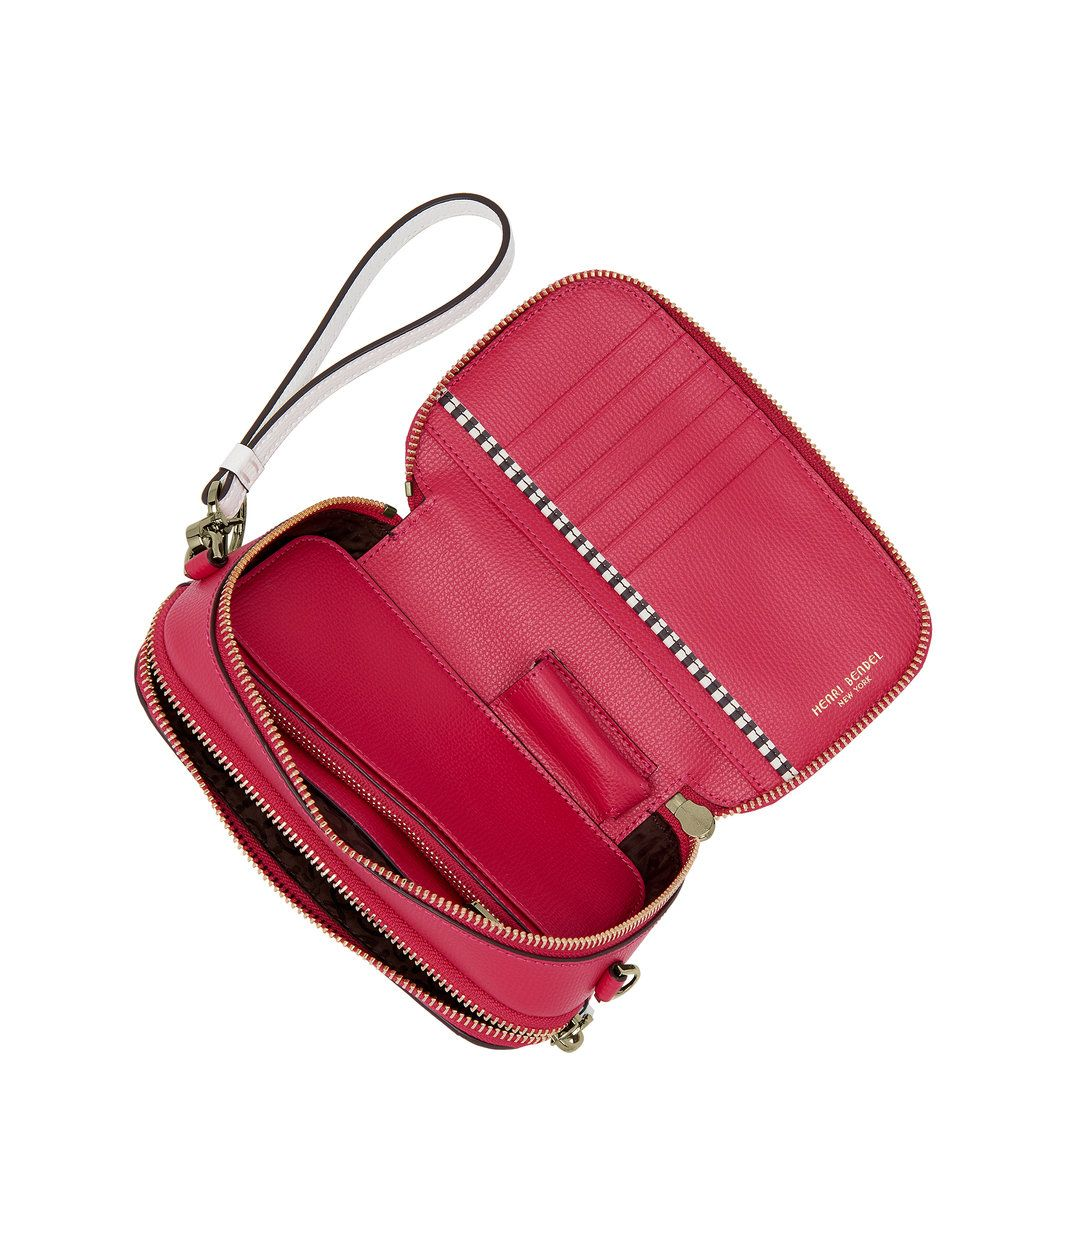 separation shoes c1205 18dba The HB Phone Wallet Leather Crossbody by Henri Bendel is the ...